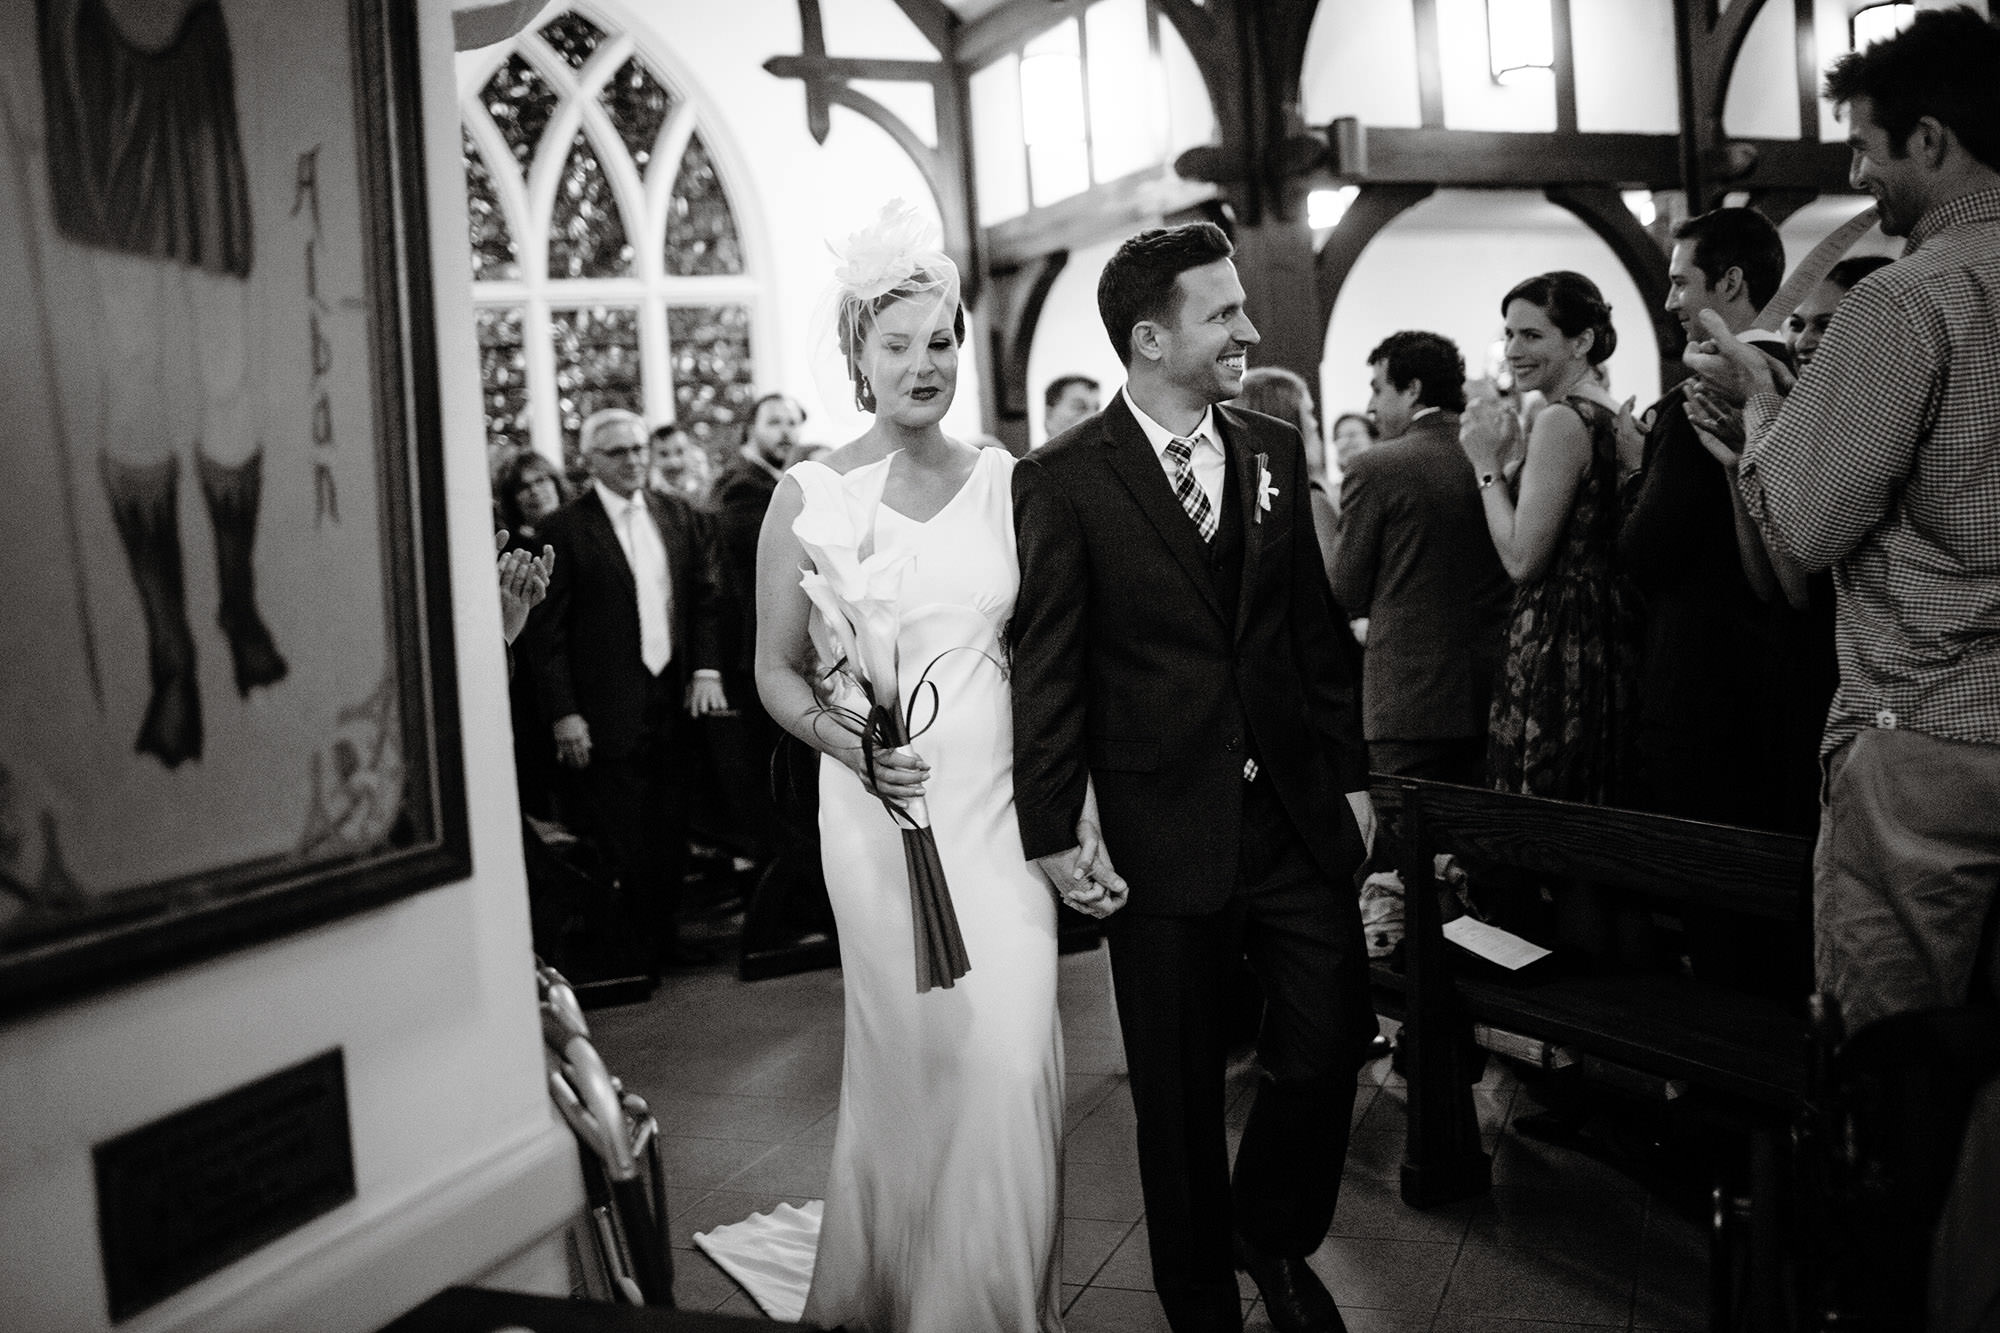 The Bride and Groom Recessional at St. Alban's Church following their ceremony.